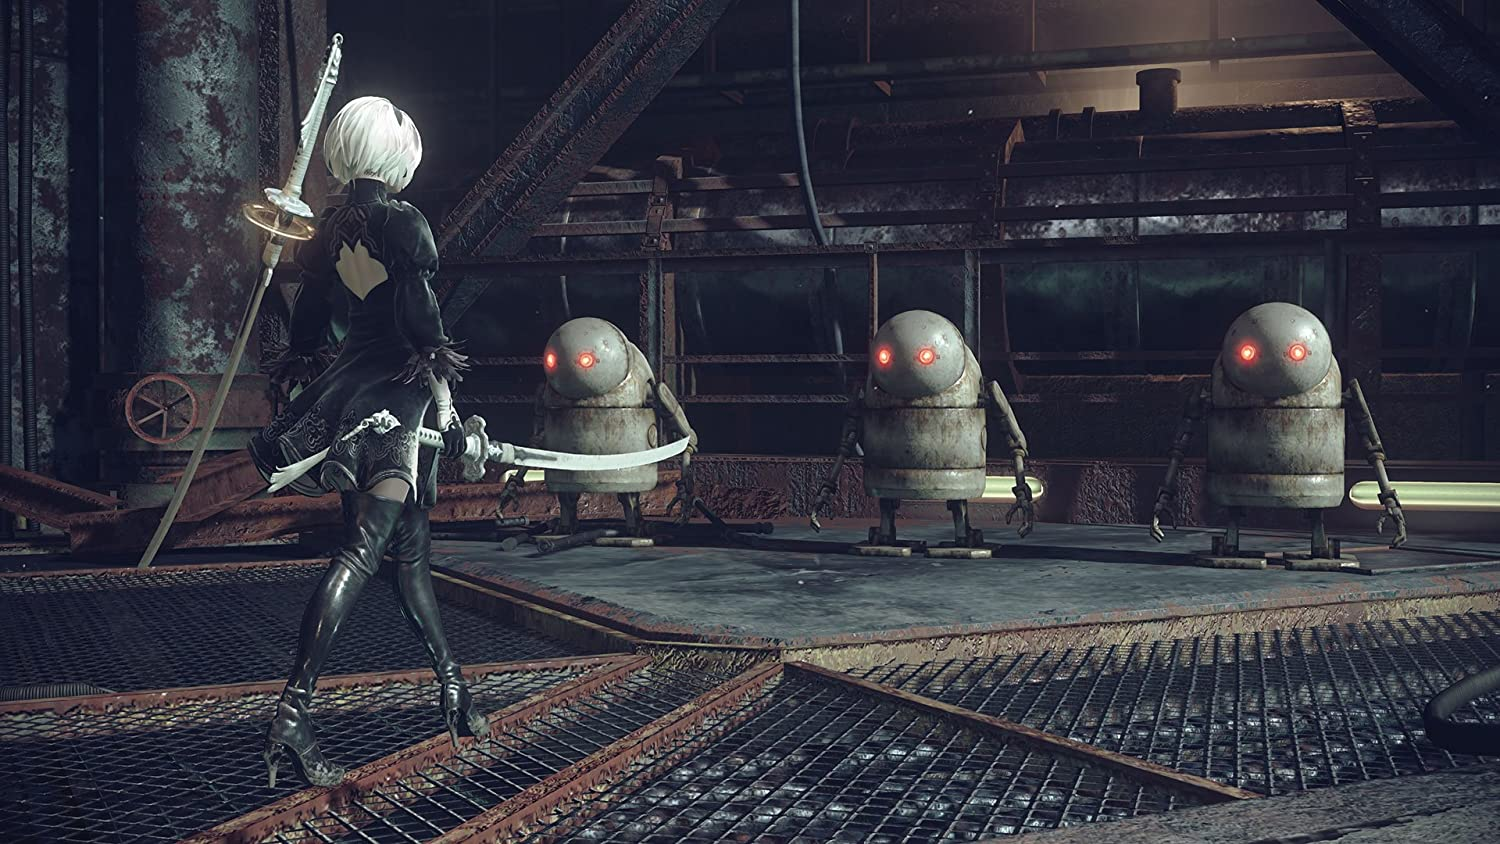 Square Enix Nier: Automata Limited Edition, PS4 Limited PlayStation 4 Inglés vídeo - Juego (PS4, PlayStation 4, Acción / RPG, M (Maduro)): Amazon.es: Videojuegos